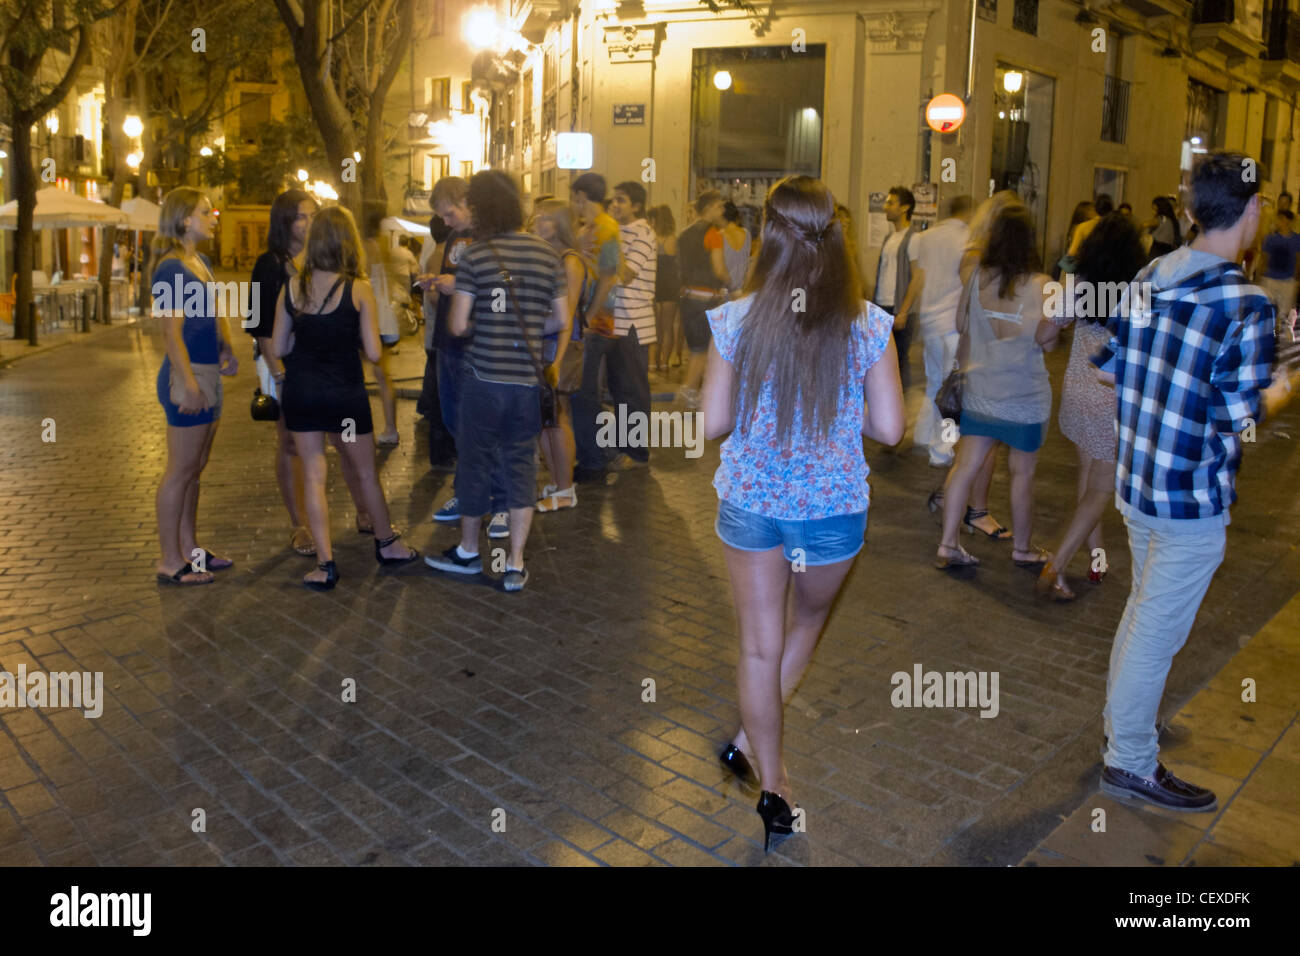 Nightlife people in El Carmen, young people on the street, Valencia, Spain - Stock Image